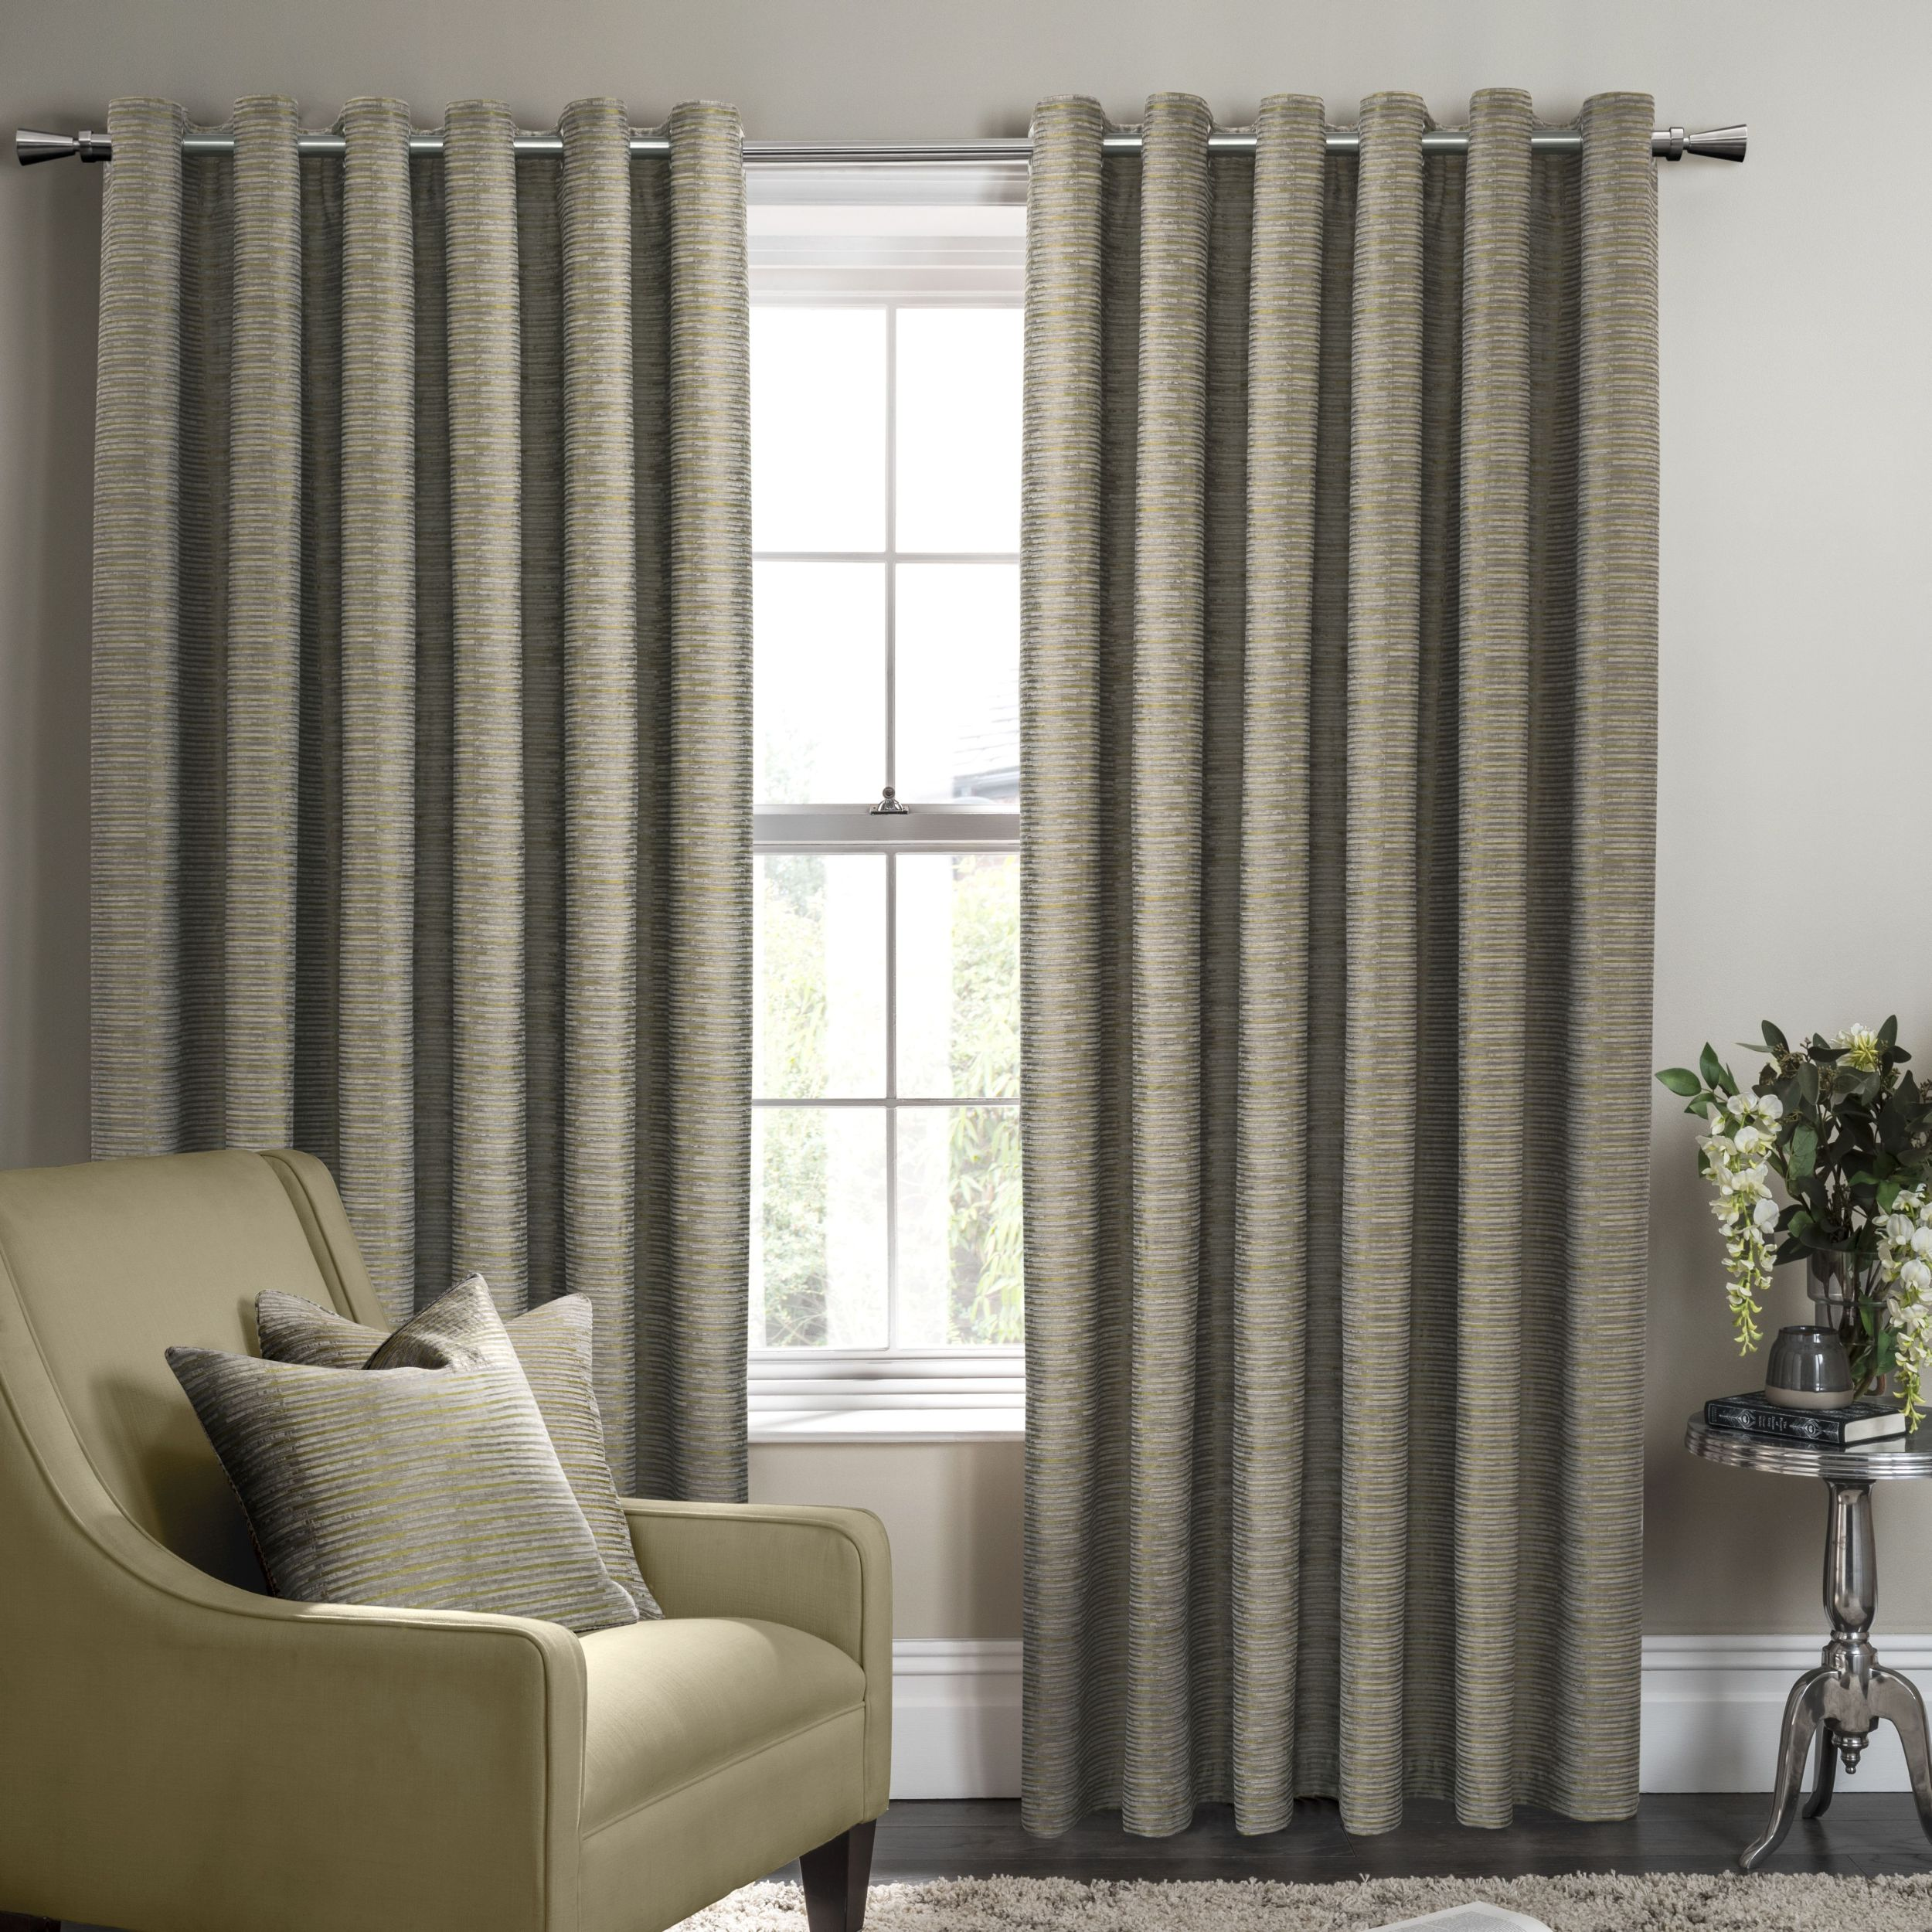 Campello Olive Eyelet Ready Made Curtains